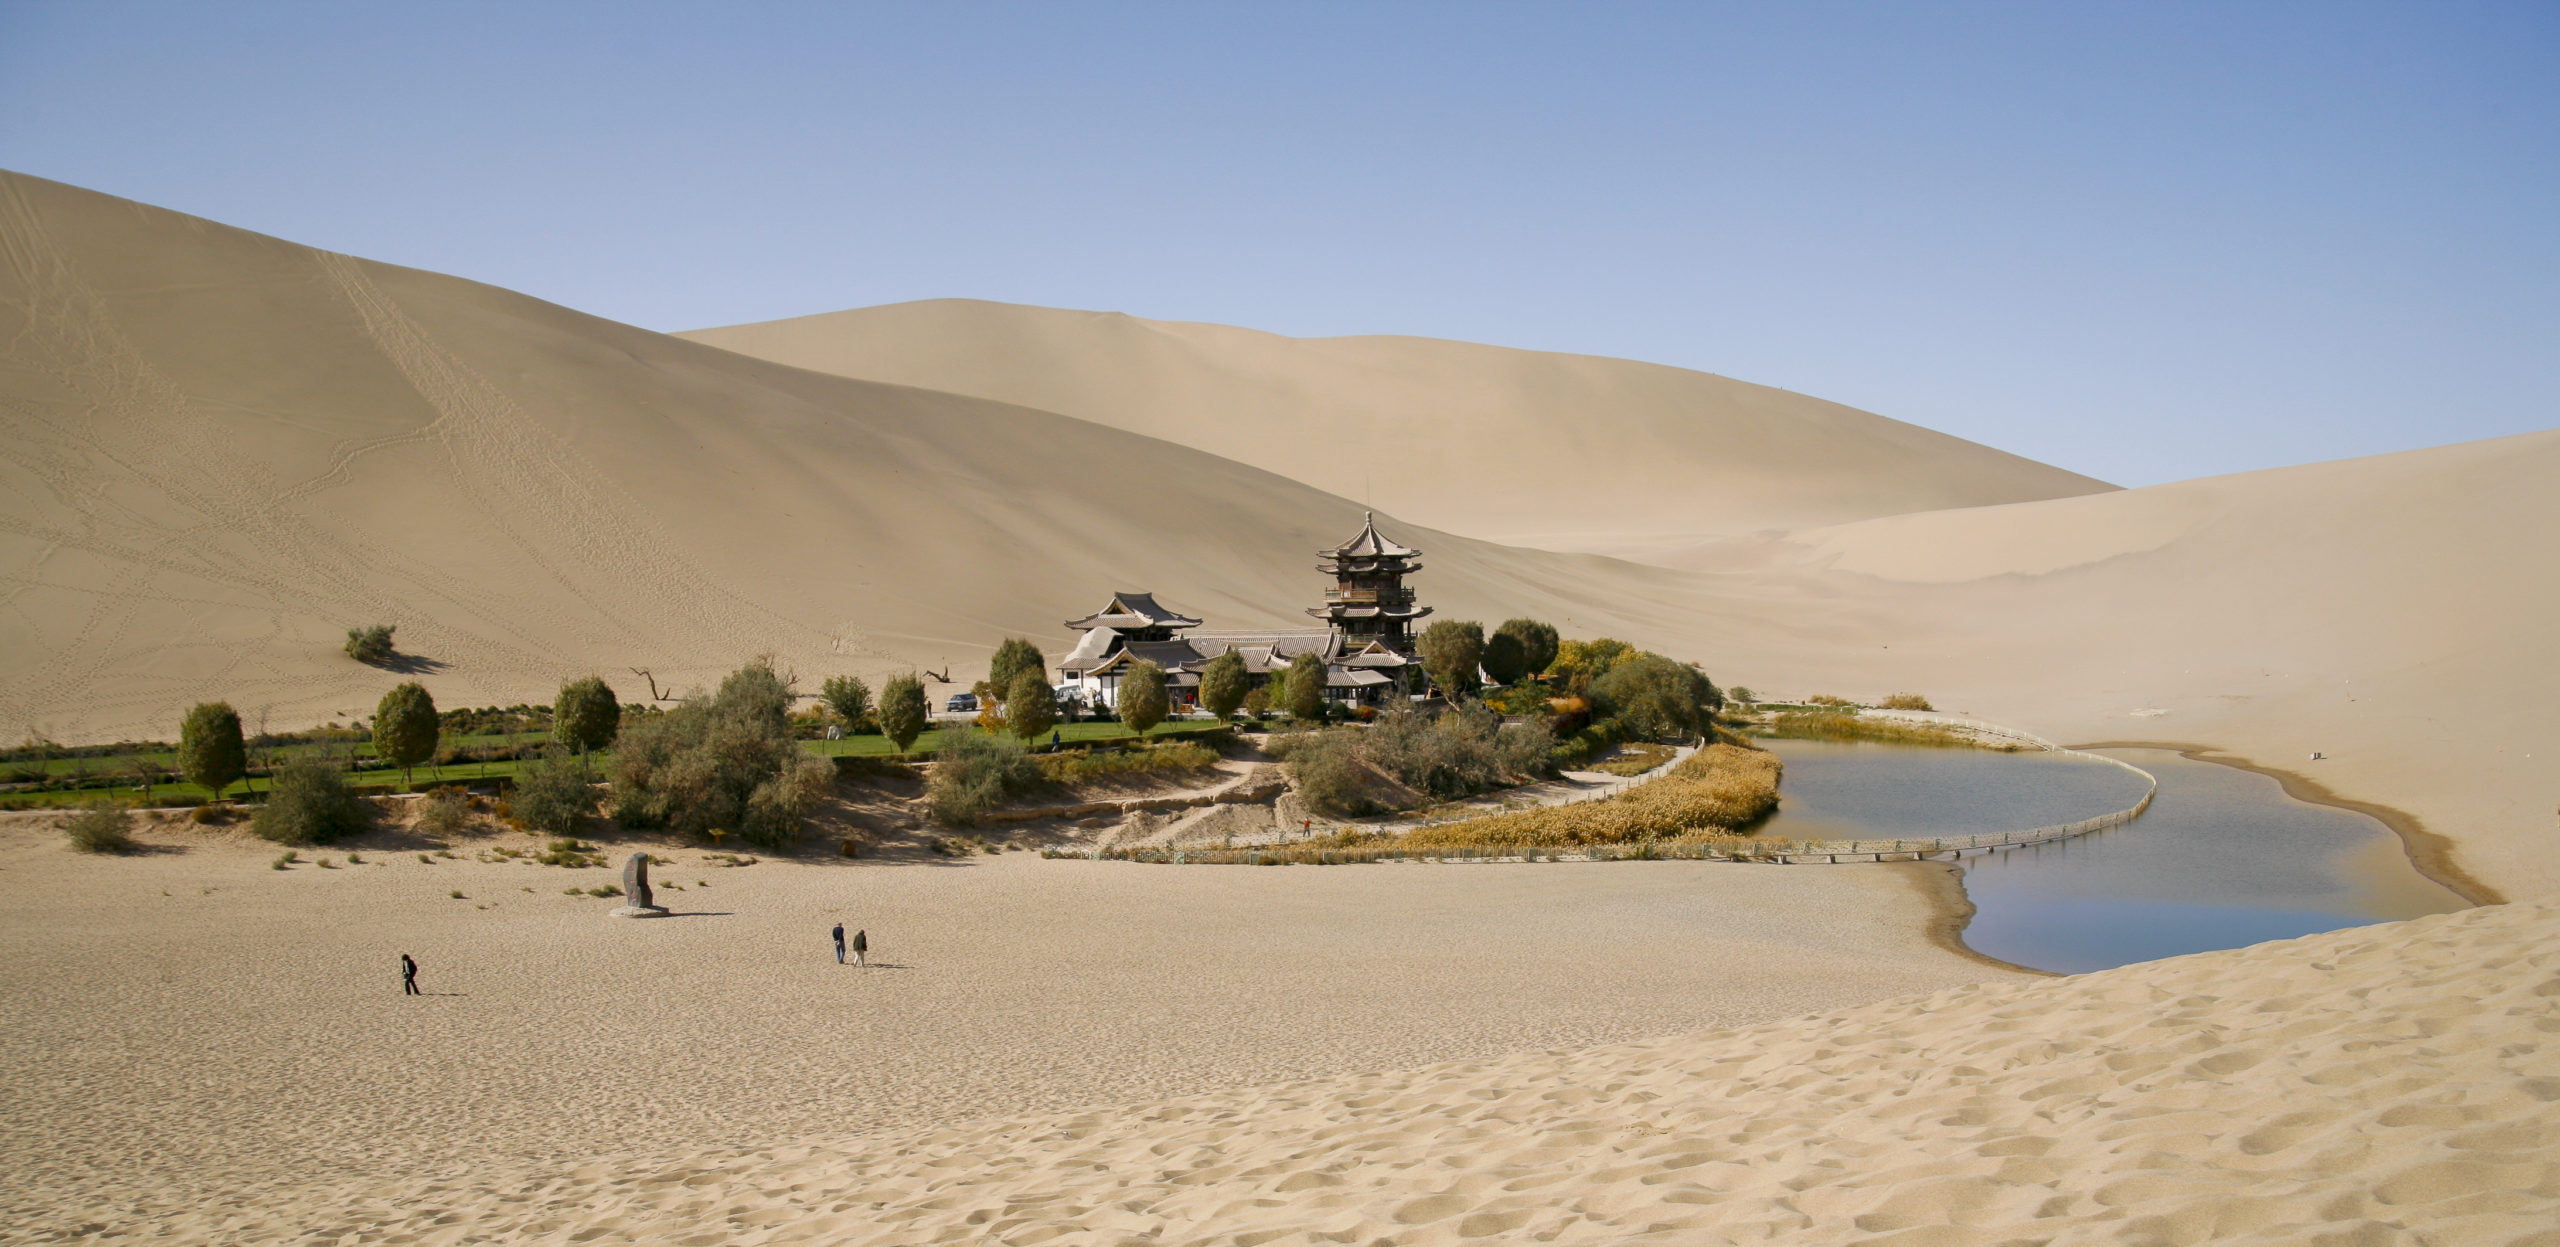 The oasis of Crescent Lake at Dunhuang, China